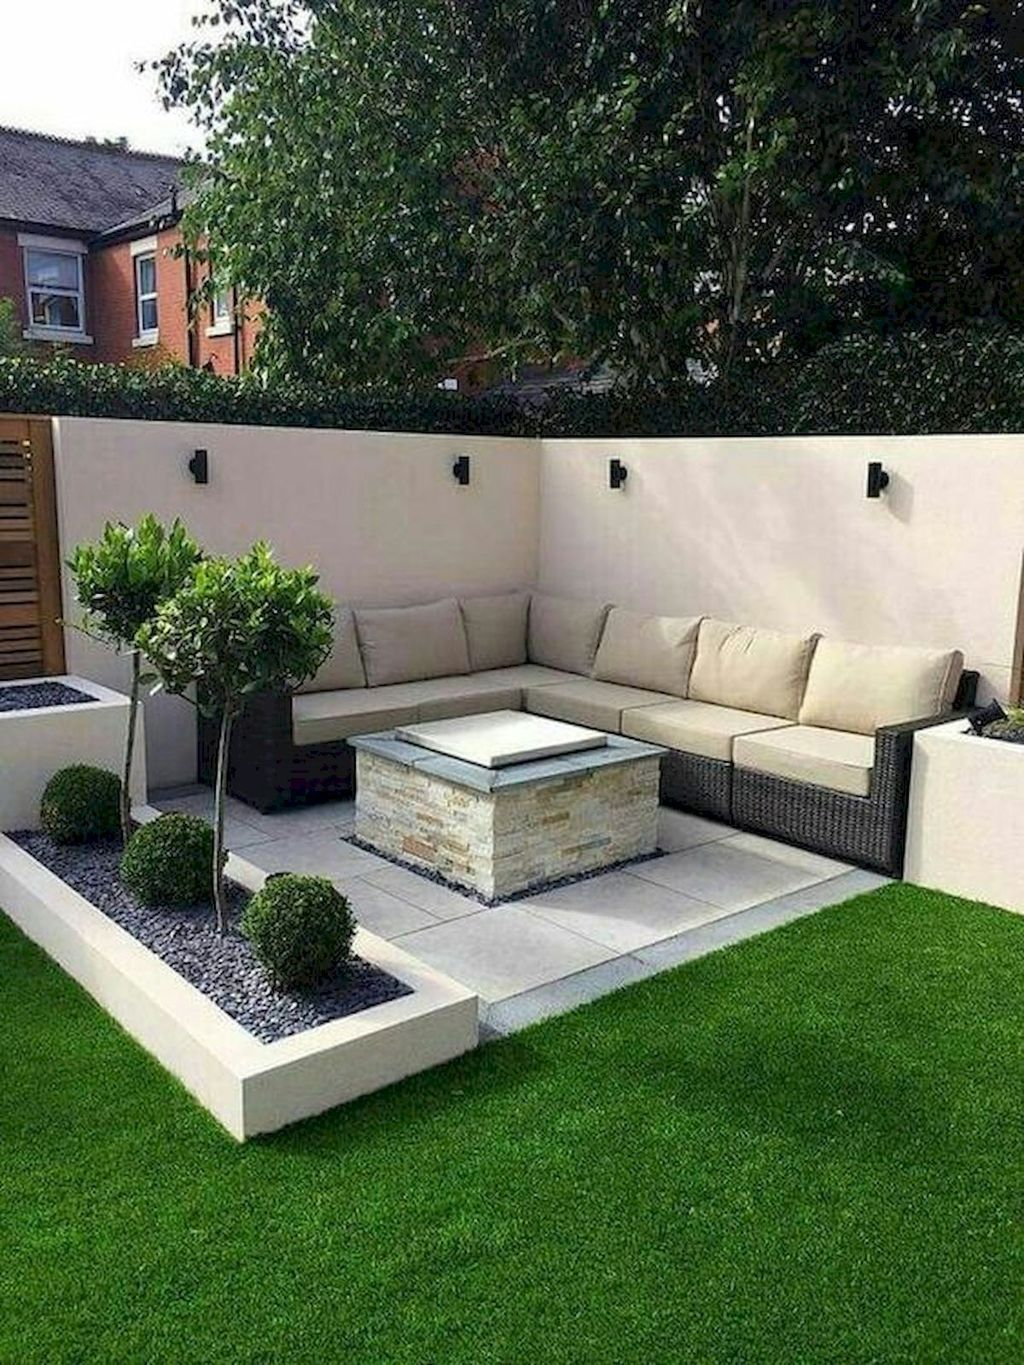 Awesome Backyard Landscaping Ideas With Elegant Accent 24